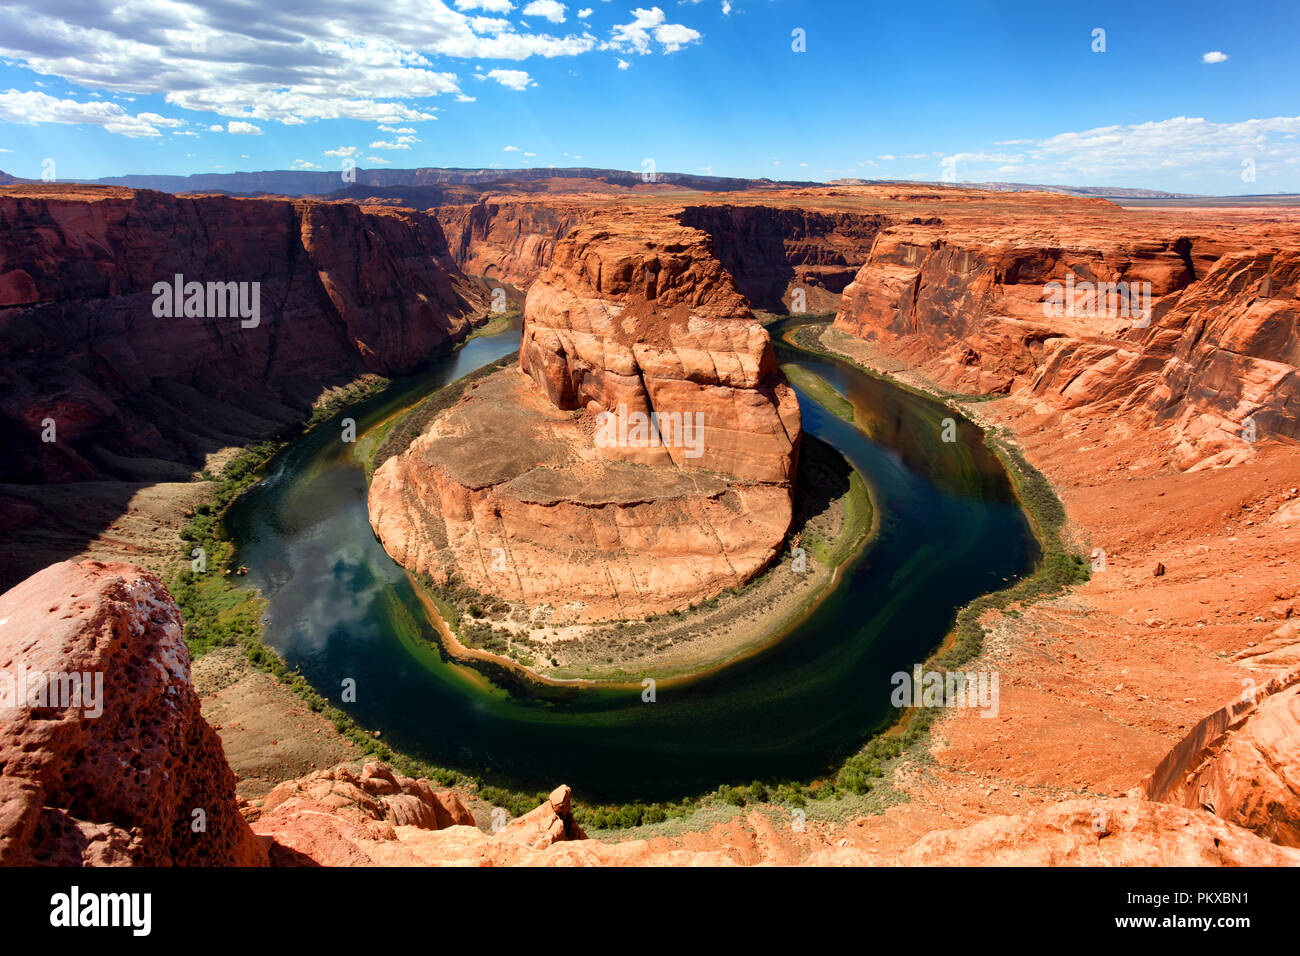 Horseshoe bend on the Colorado River in late summer season - Stock Image